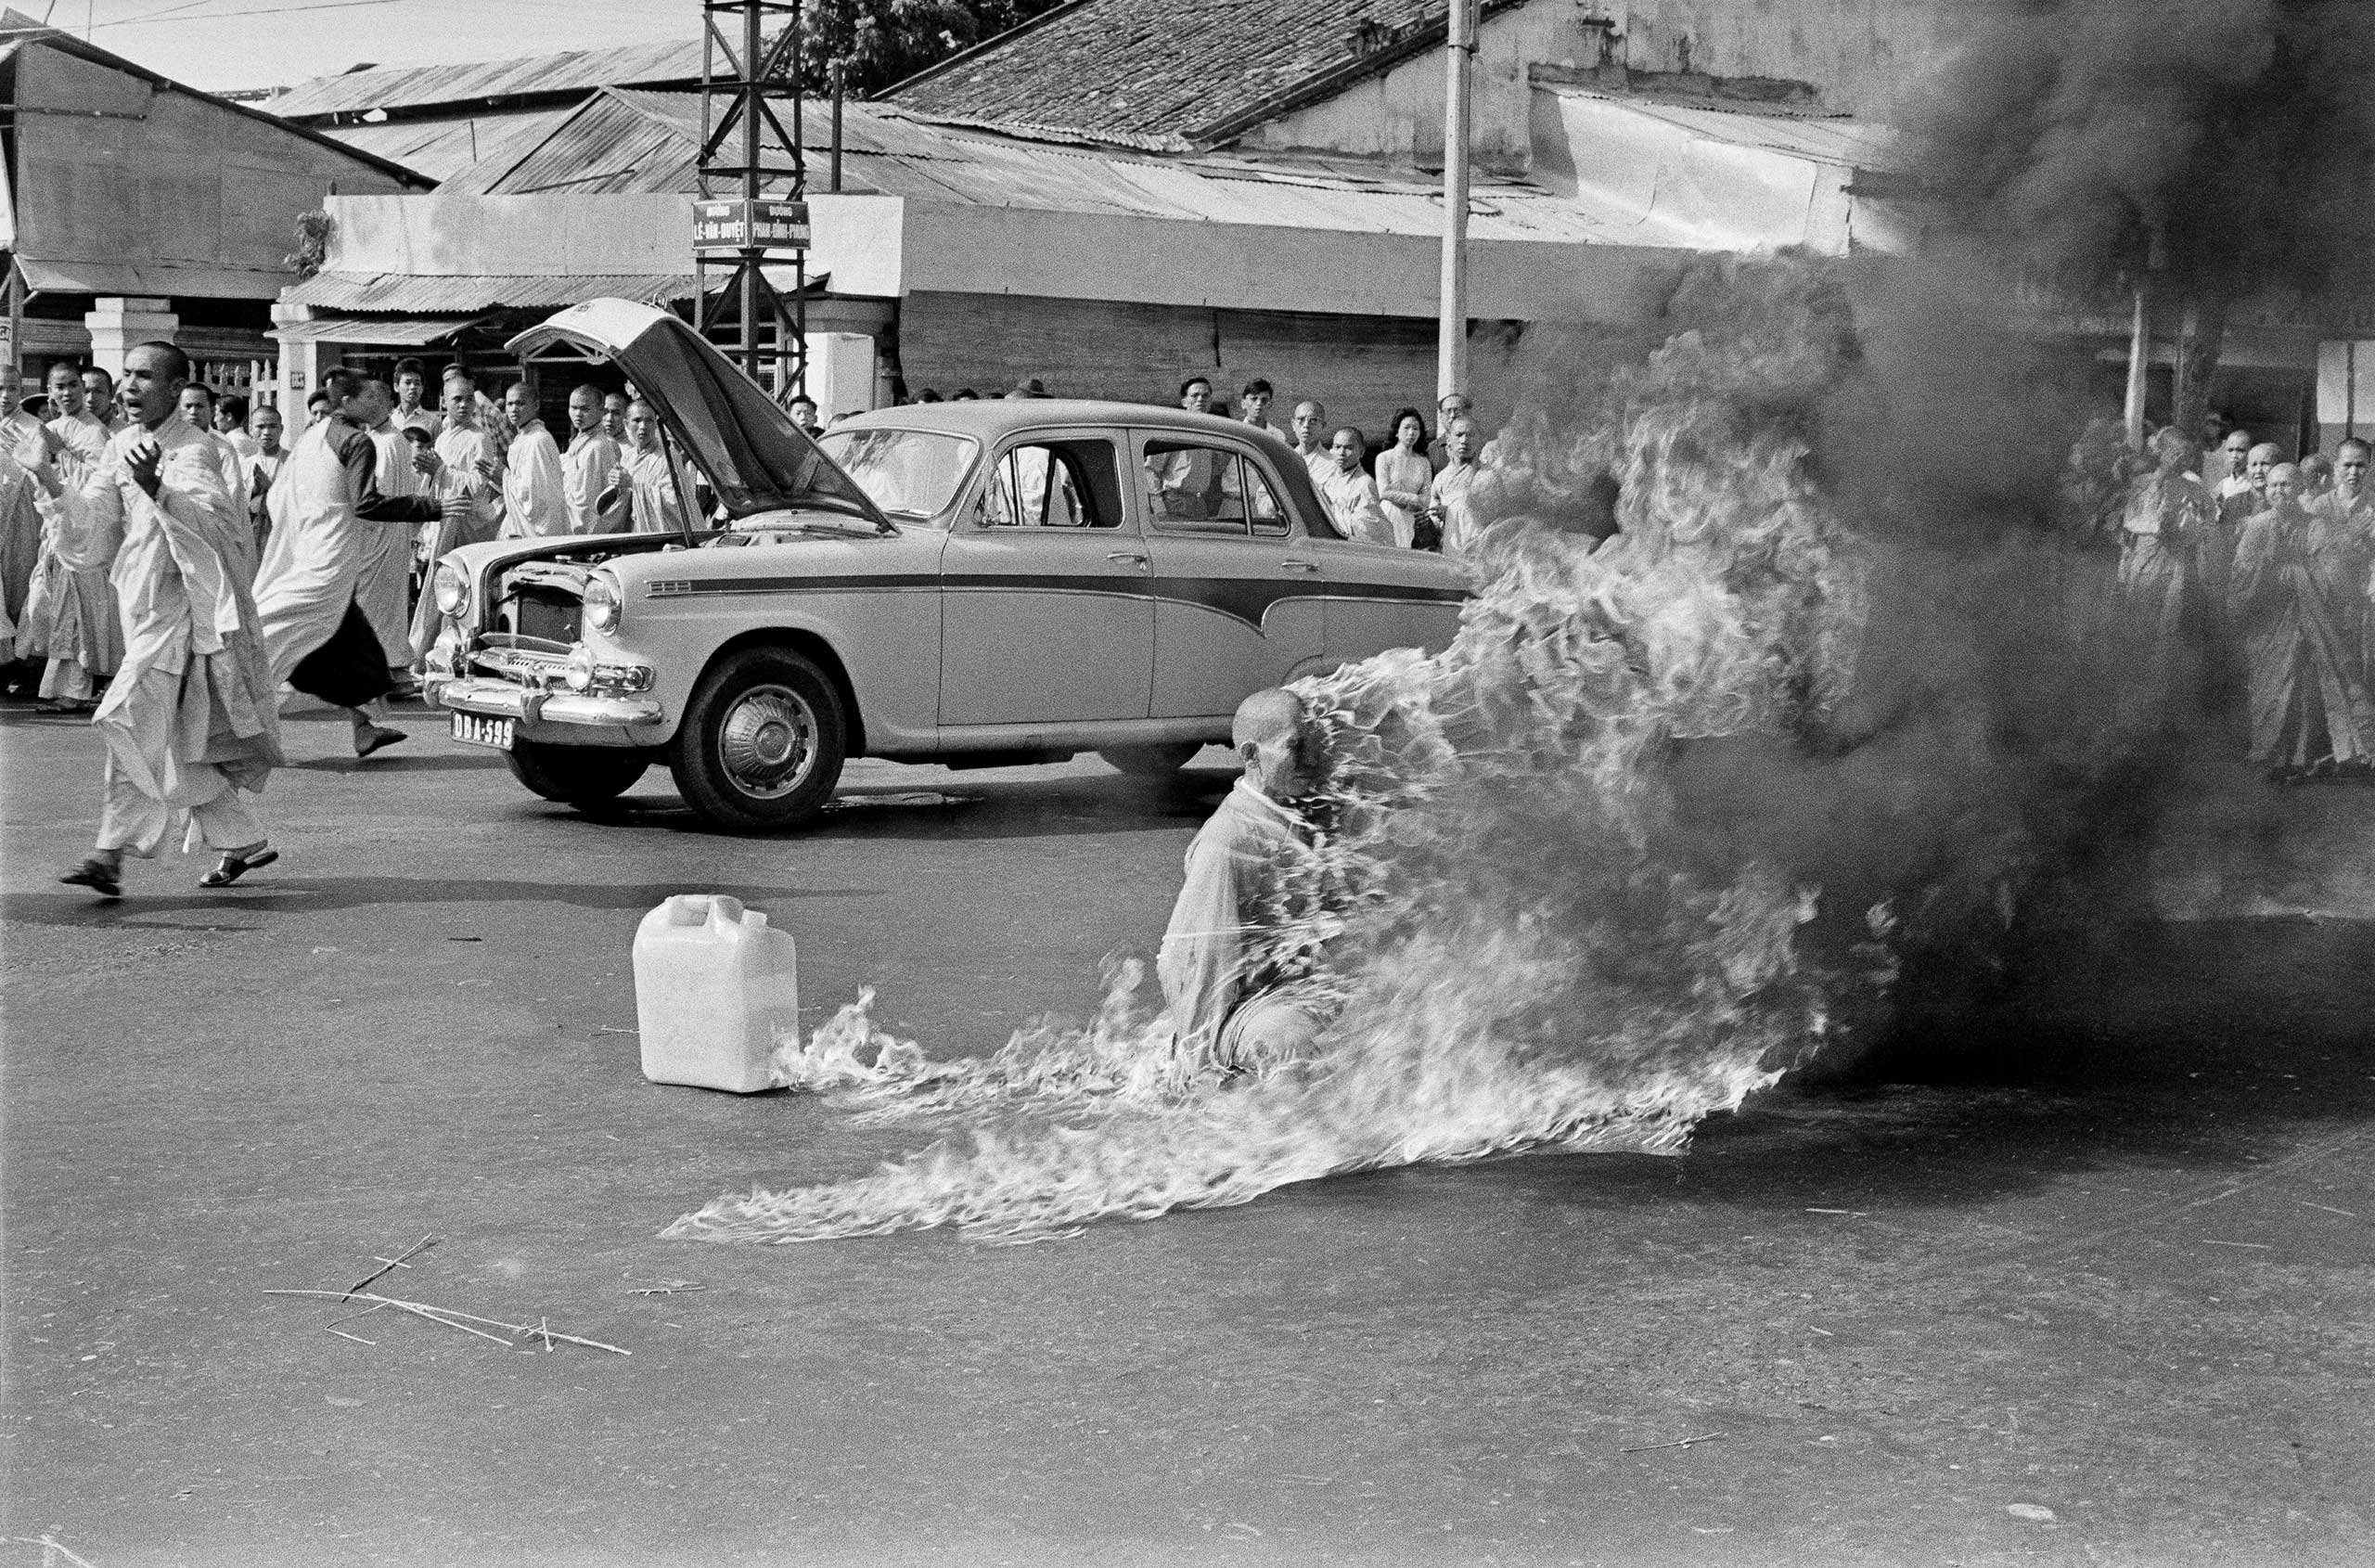 The Reverend Thich Quang Duc, a 73-year-old Buddhist monk, soaked himself in petrol before setting himself on fire to himself and burning in front of thousands of onlookers at a main highway intersection in Saigon on June 11, 1963.